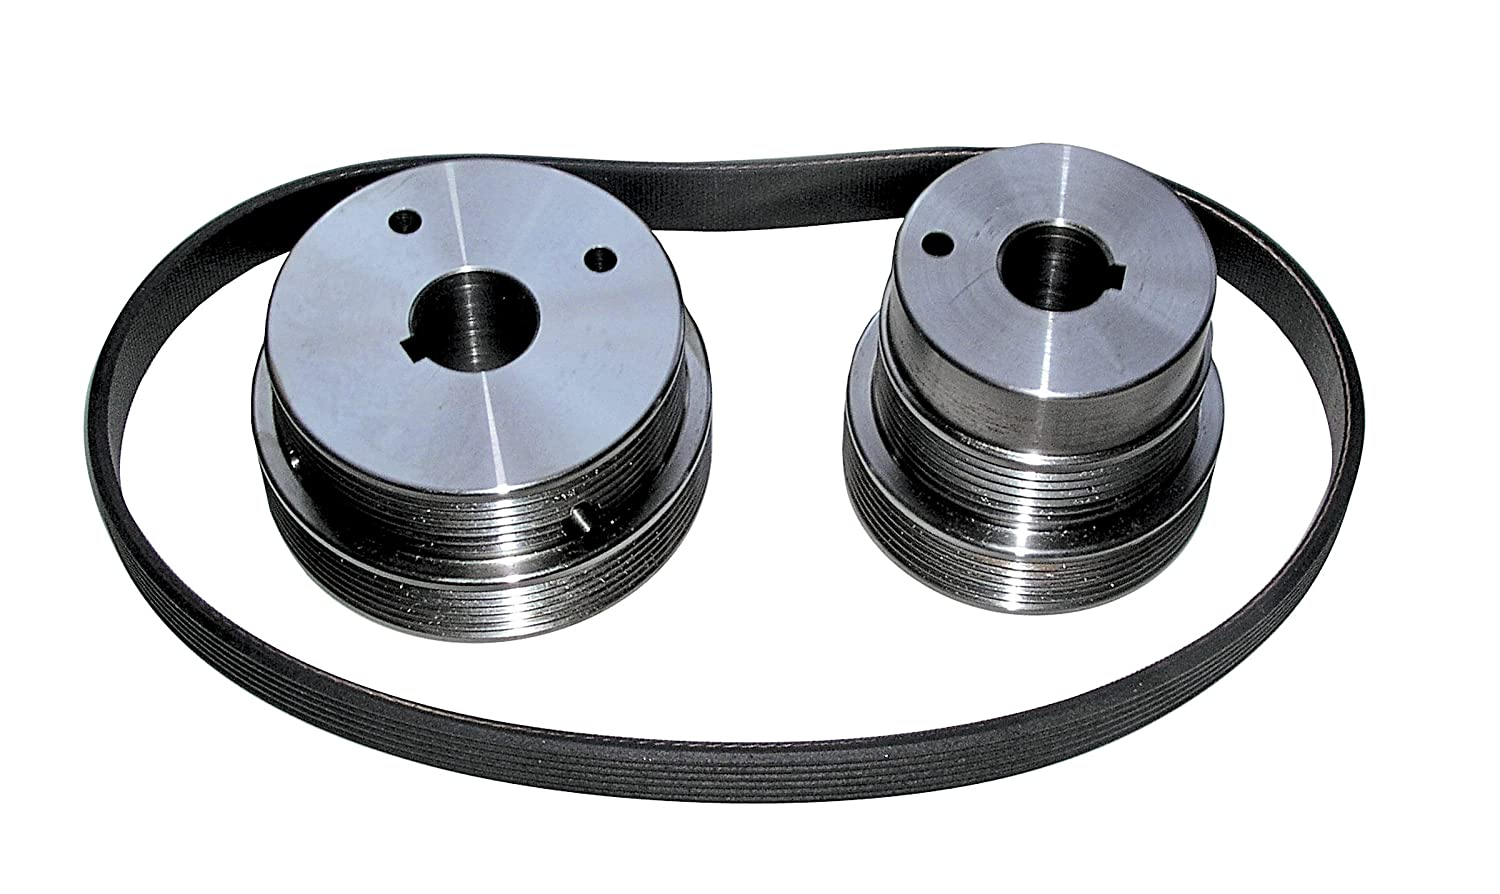 Shark 6000 Pulley Kit for Gear Box